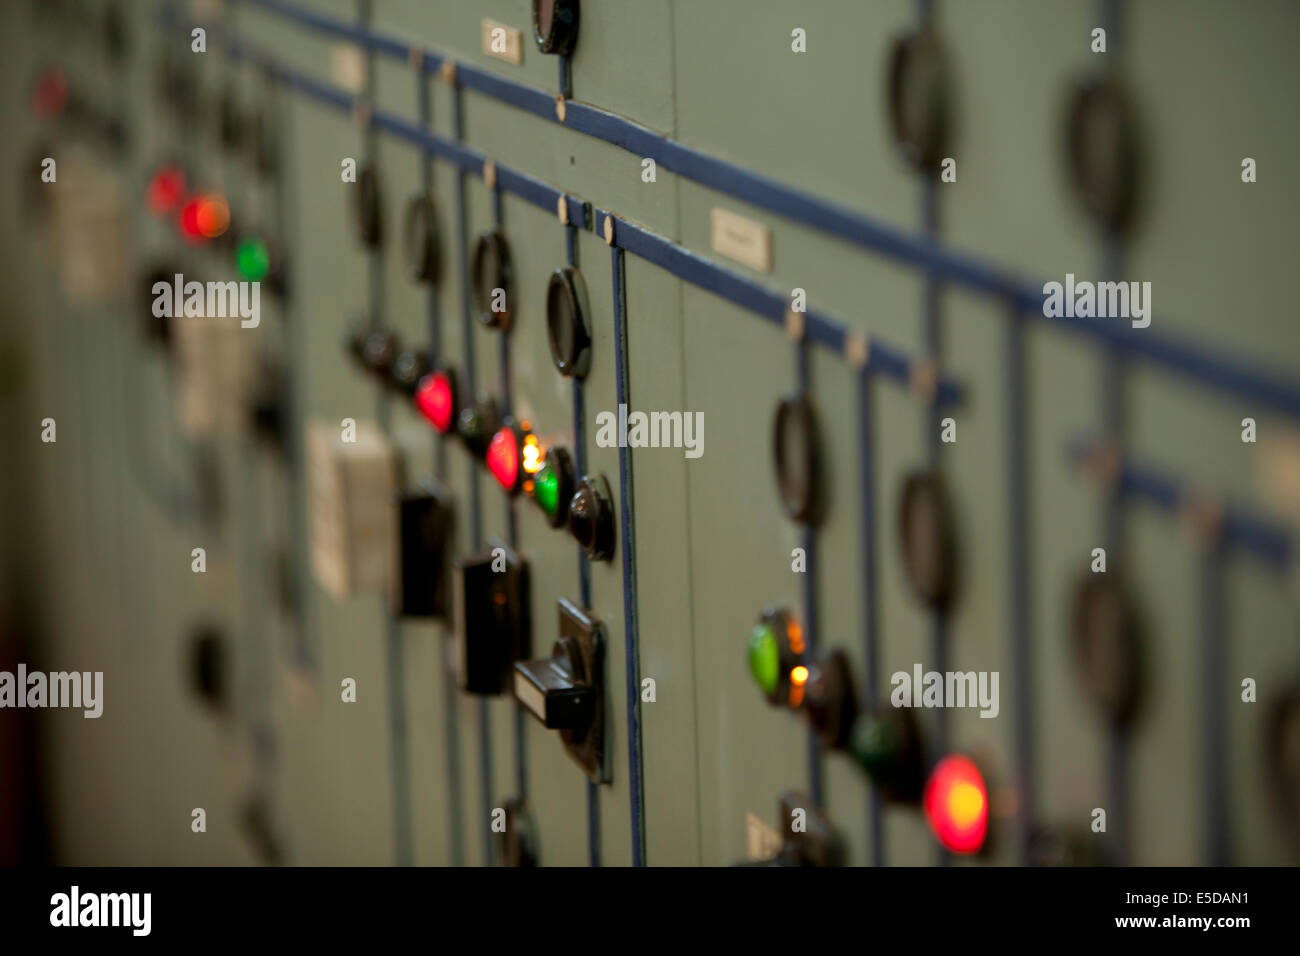 Russian old electrics power station circuits dials - Stock Image